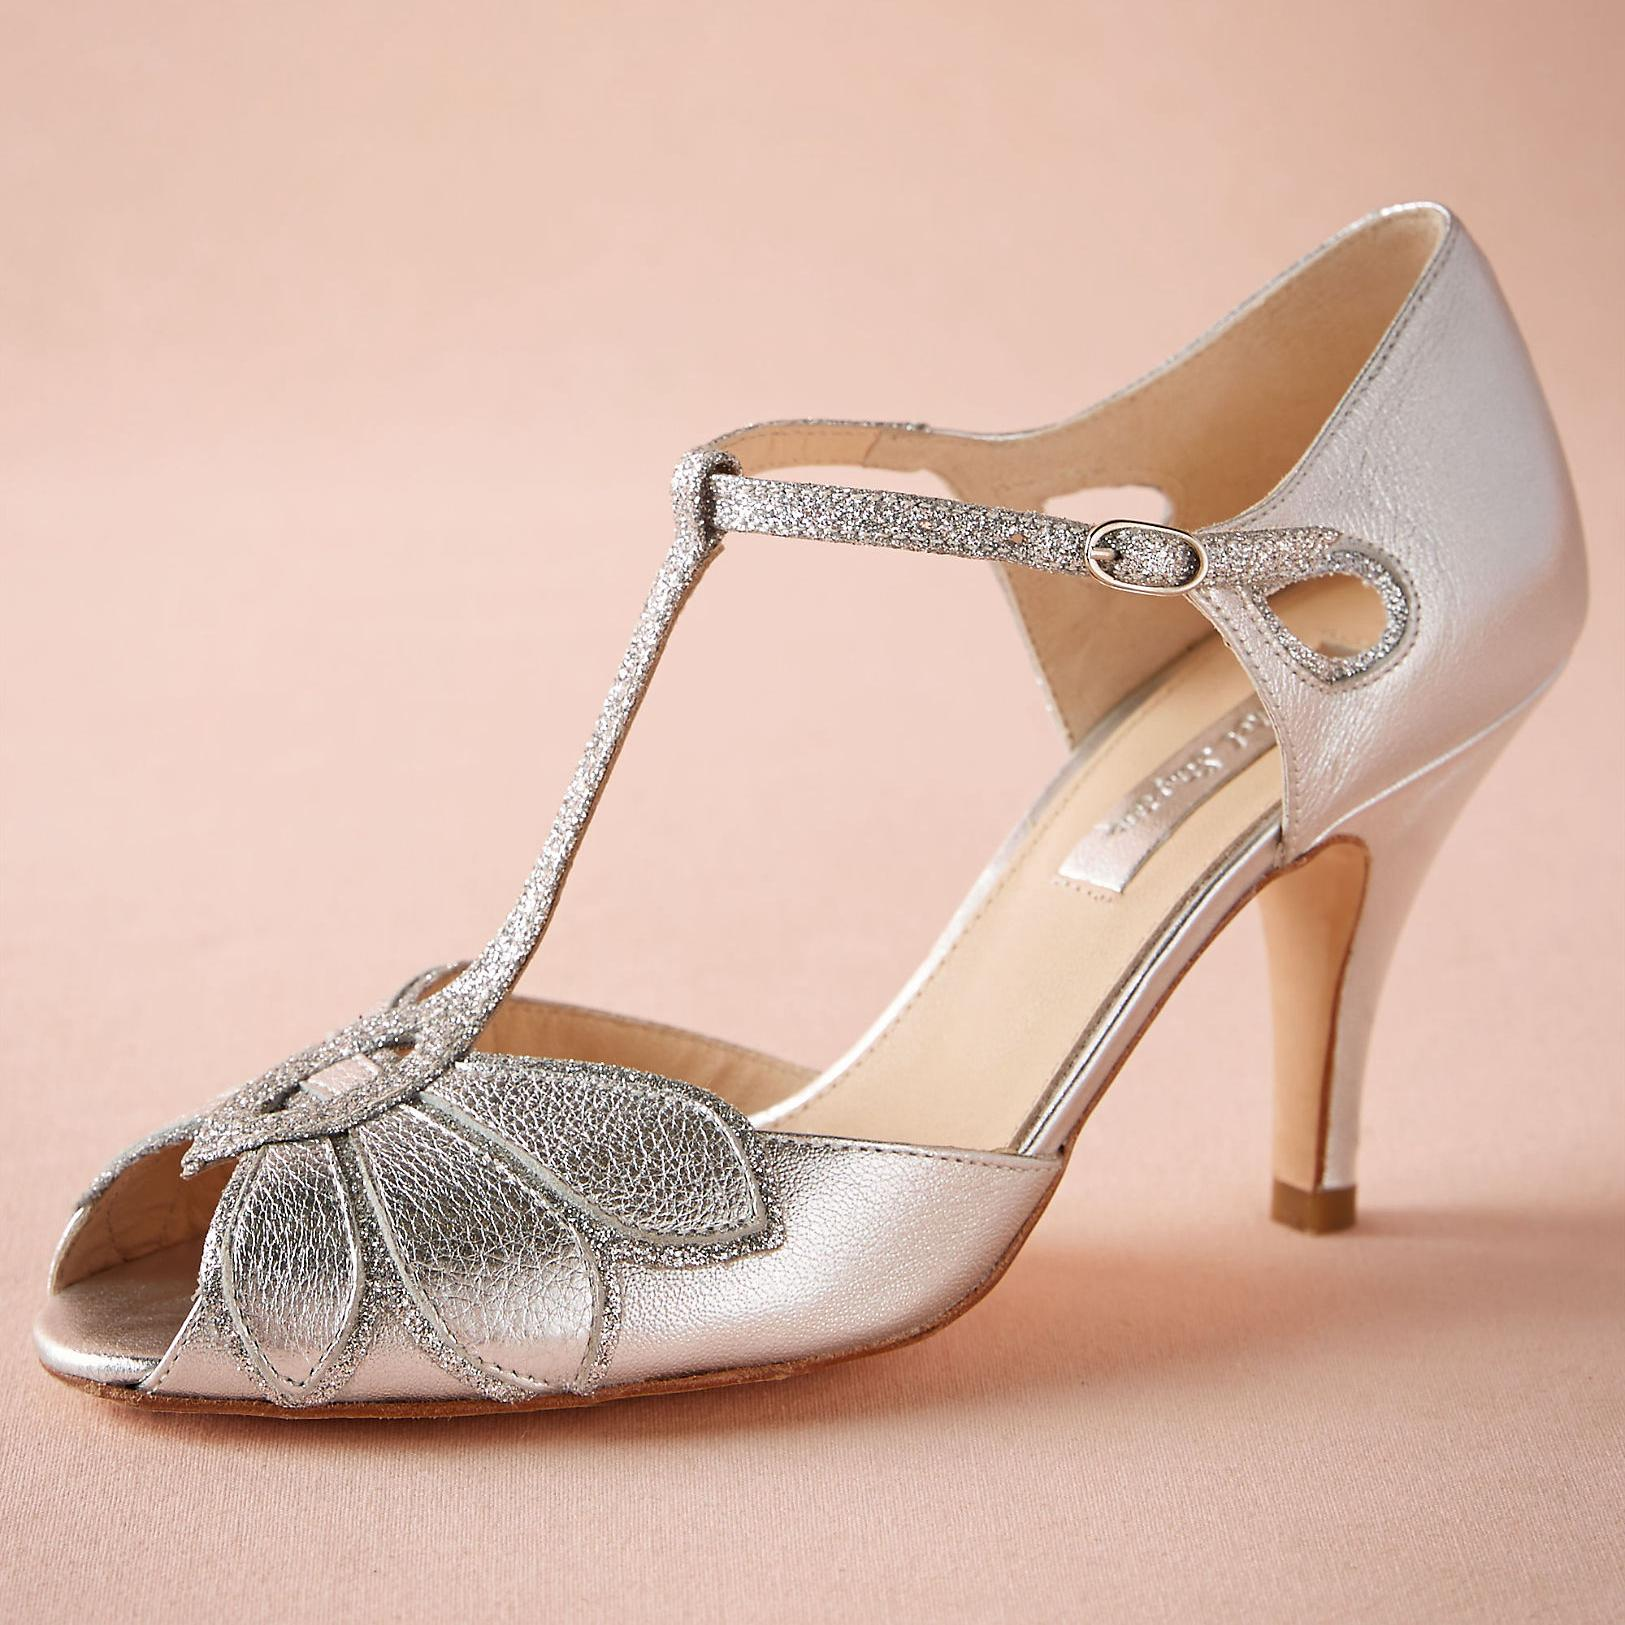 8af1a9c12e9c Silver Wedding Shoes Glitter Pumps Mimosa T Straps Buckle Closure Leather  Party Dance 3 High Heels Women Sandals Open Toe Bridal Shoes UK 2019 From  ...